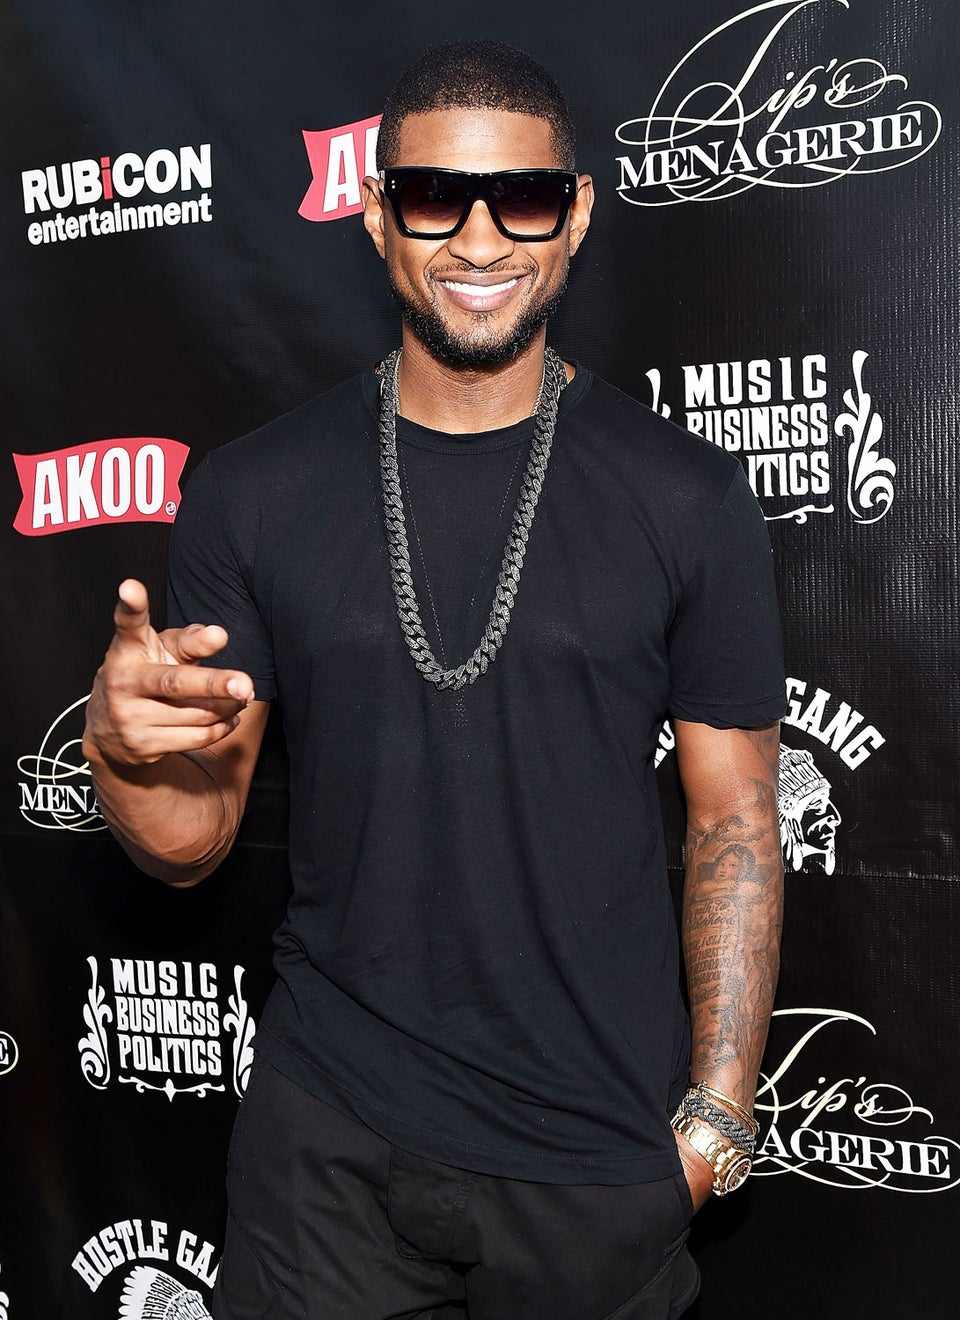 Usher's Son Thinks His Dad is 'Not a Great Singer'